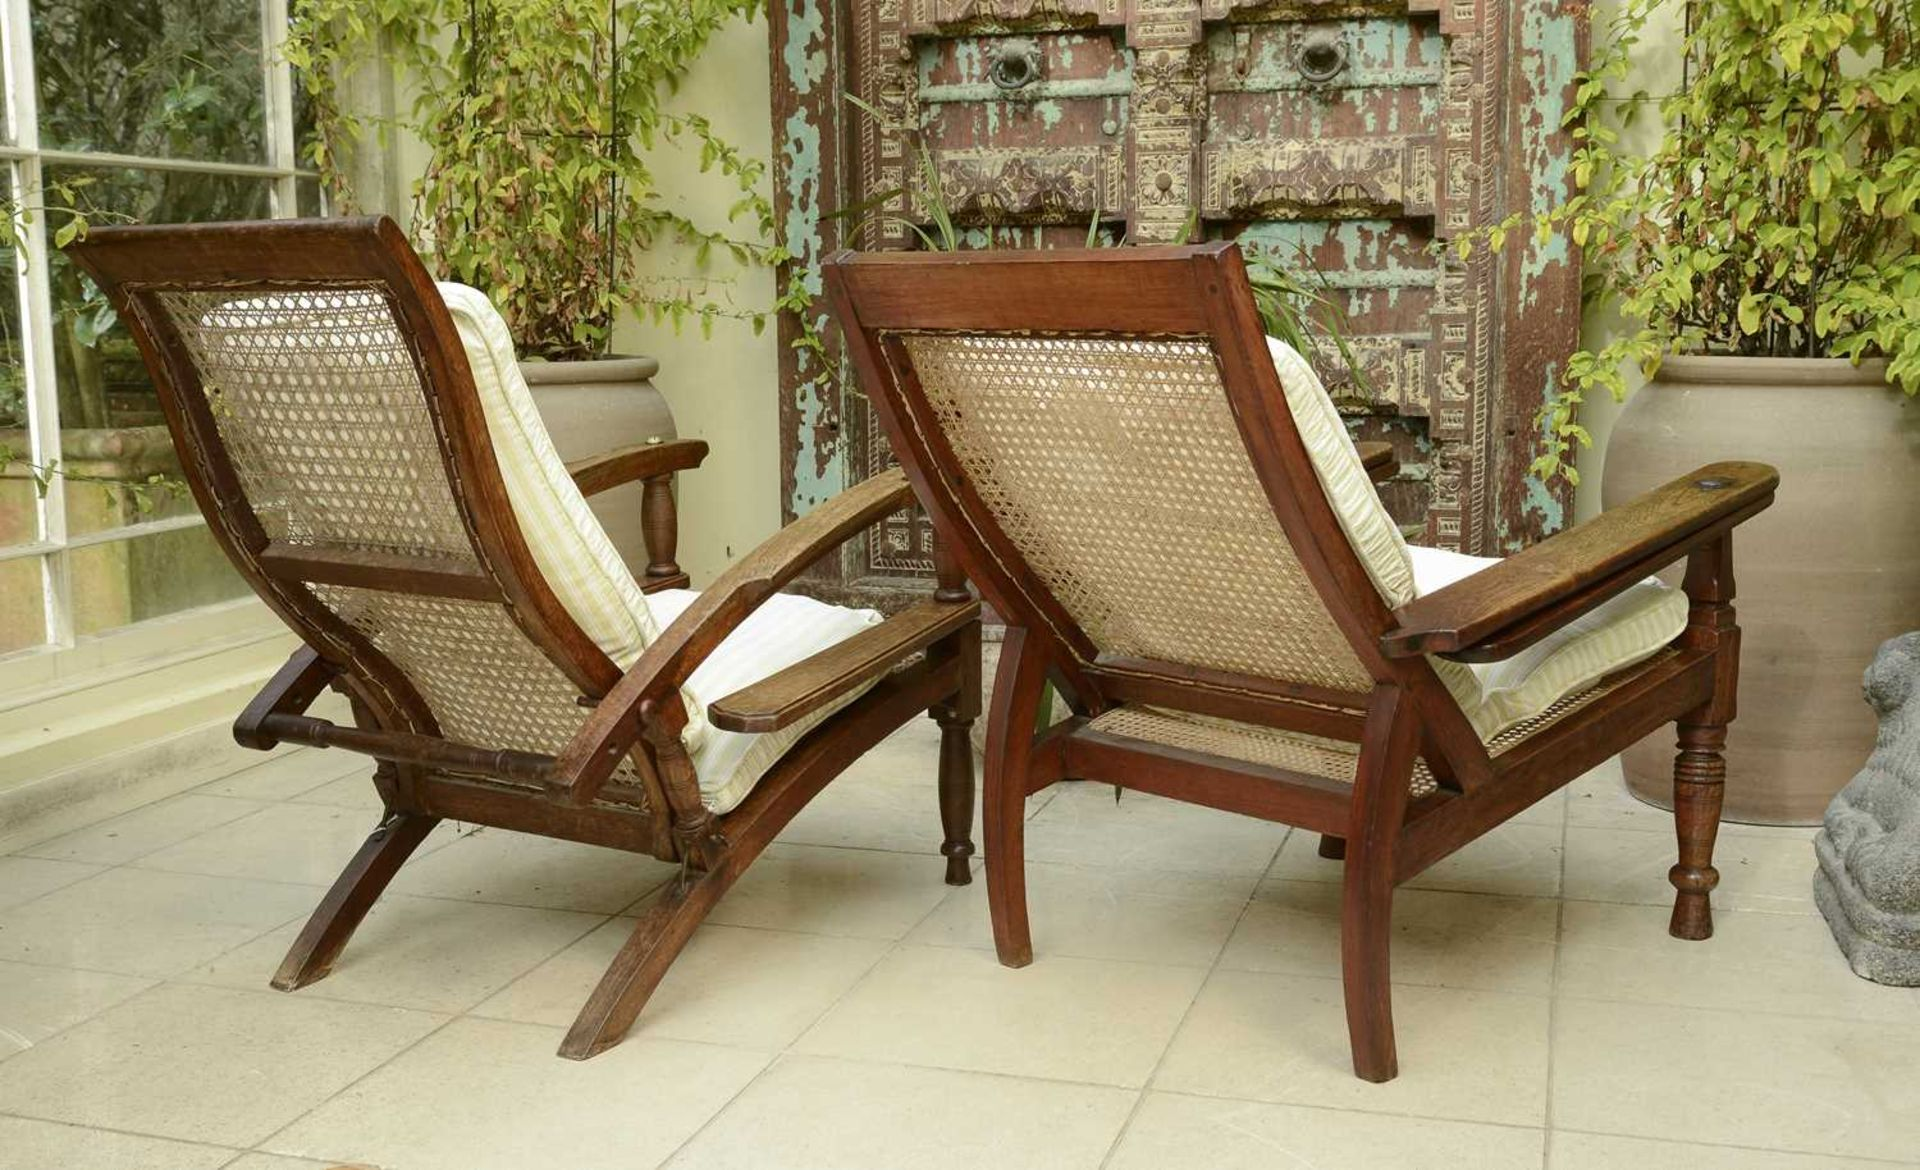 Two similar teak planter's chairs, - Image 3 of 4